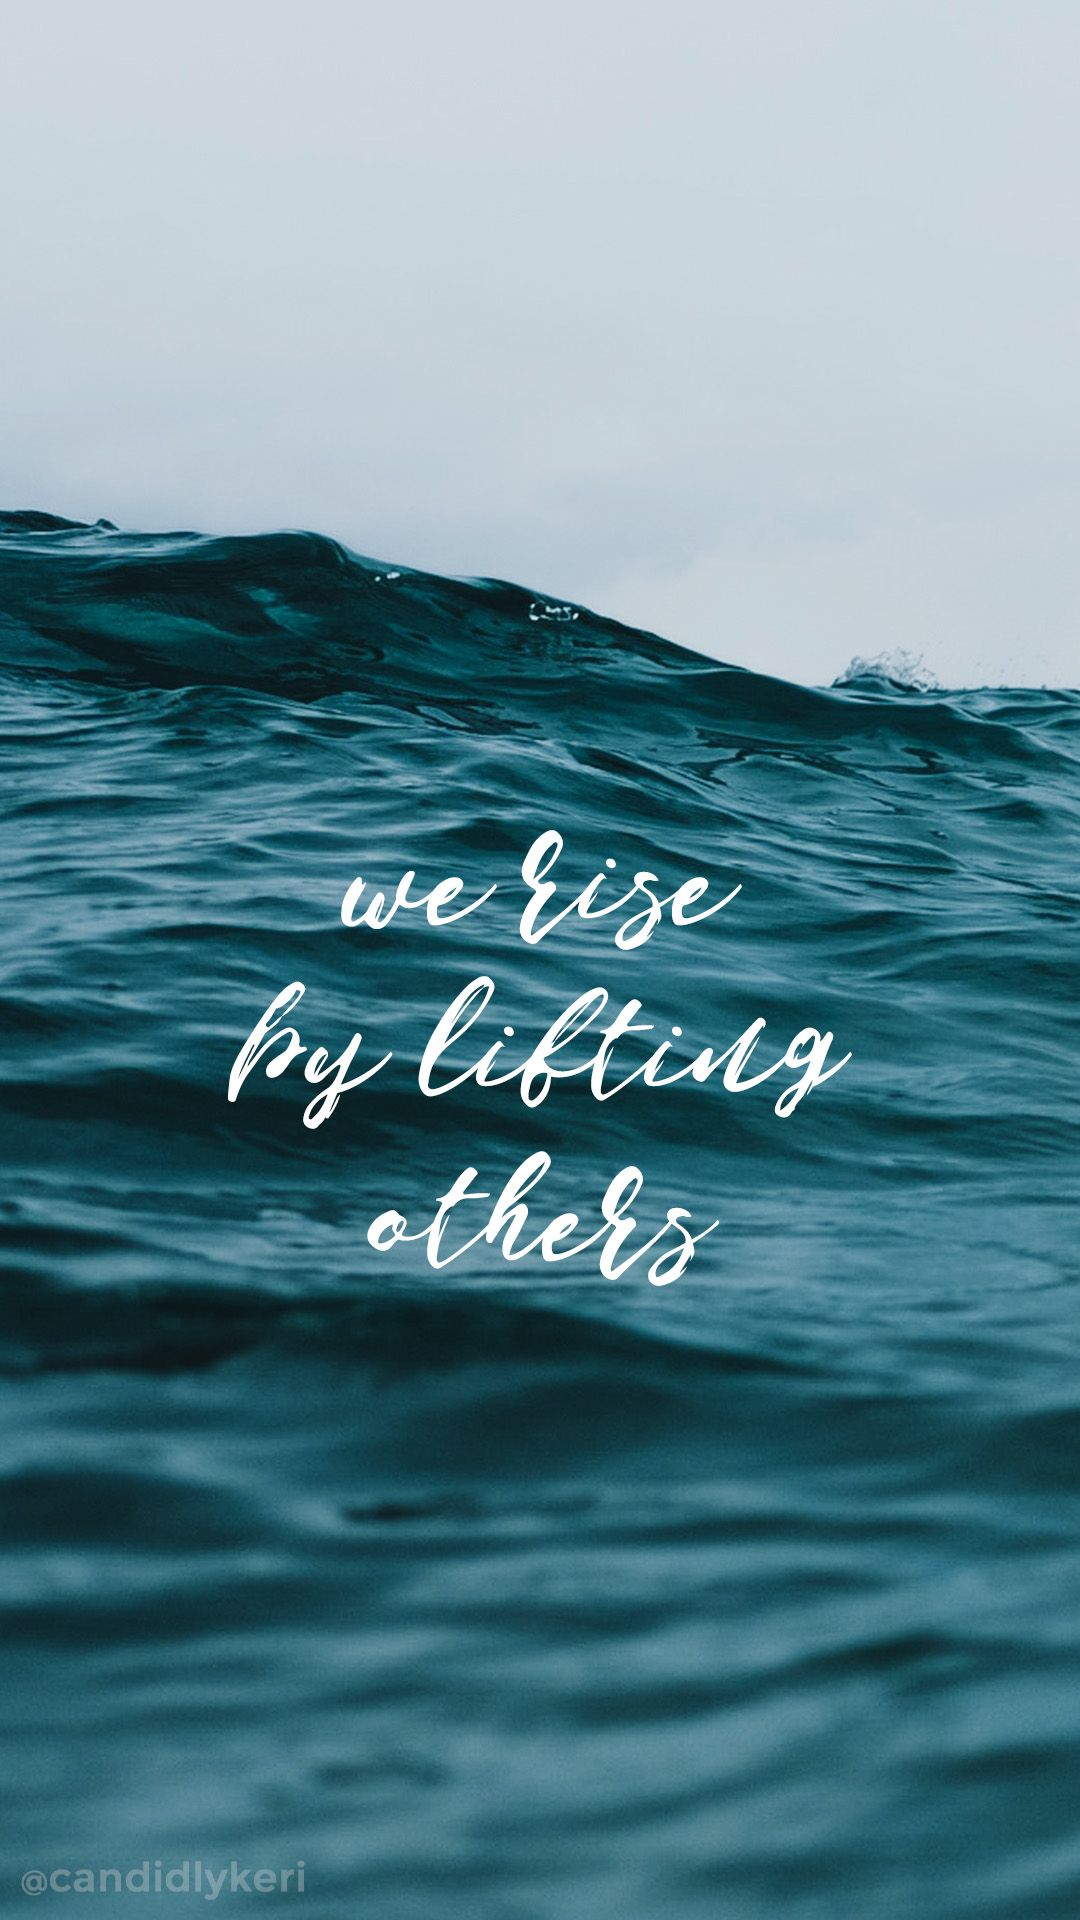 we rise by lifting others ocean wave beach quote inspirational wallpaper you can download for free